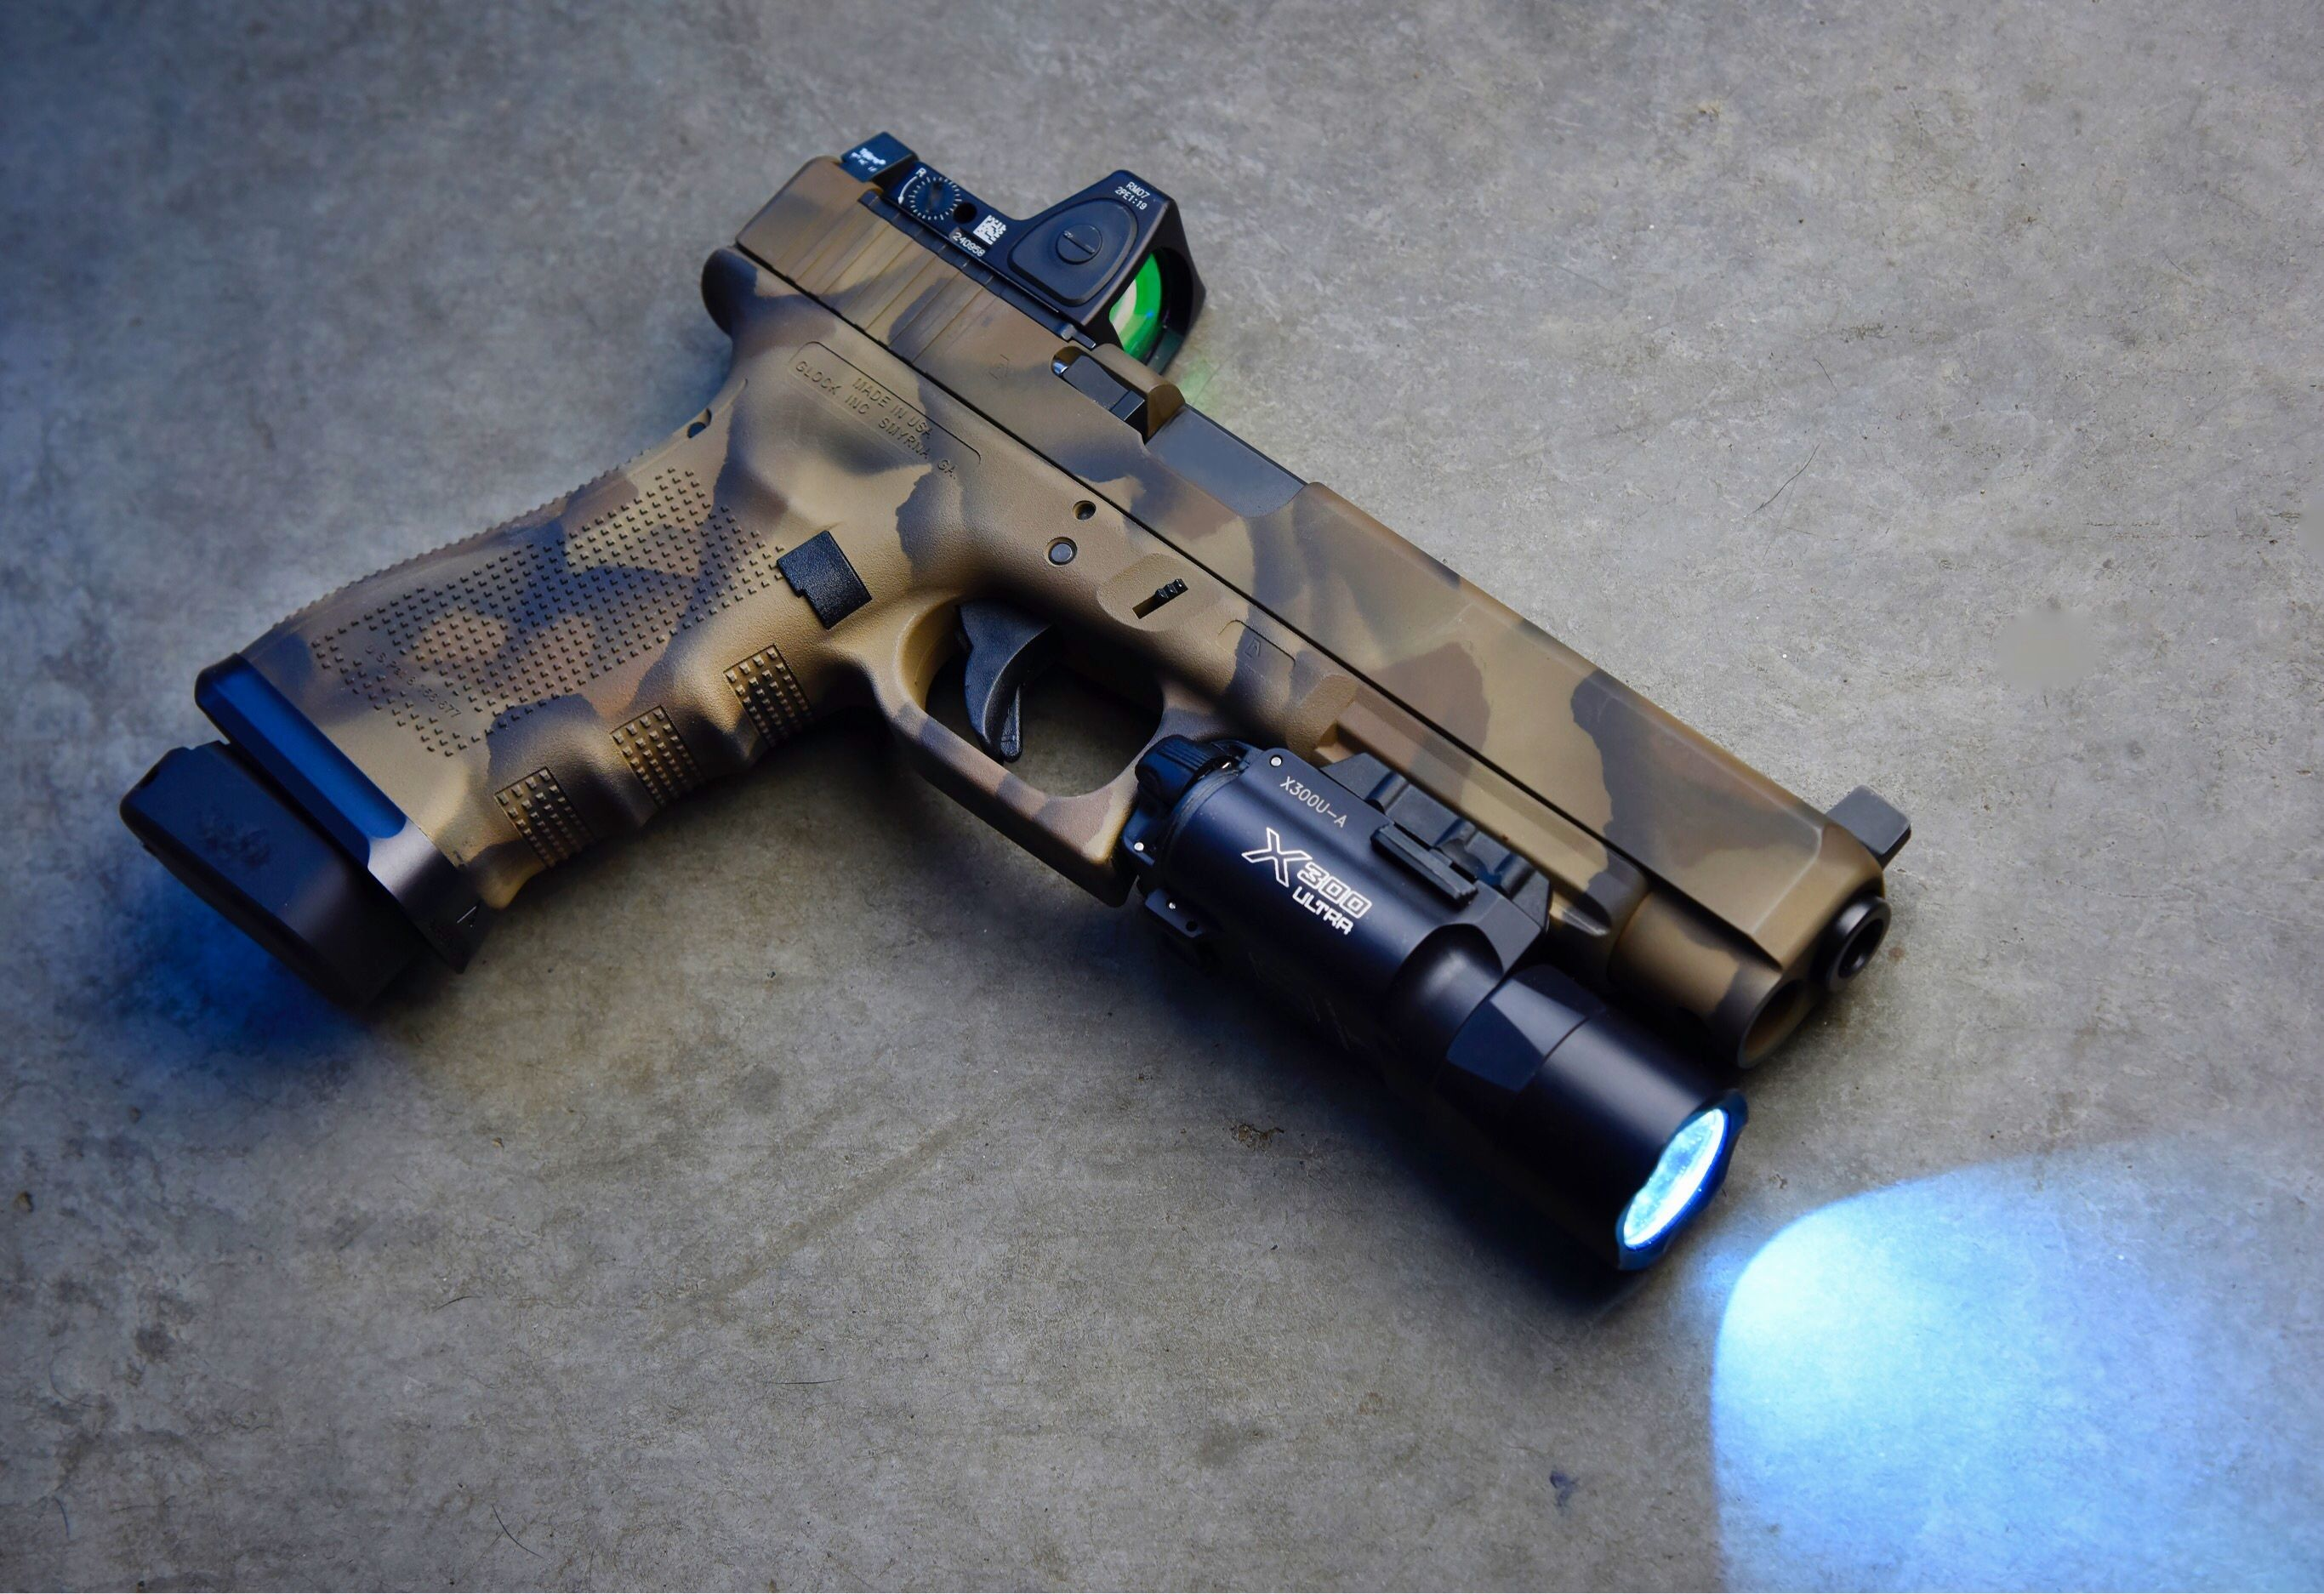 Glock 34 GEN 4 MOS custom Camo, decked out with components